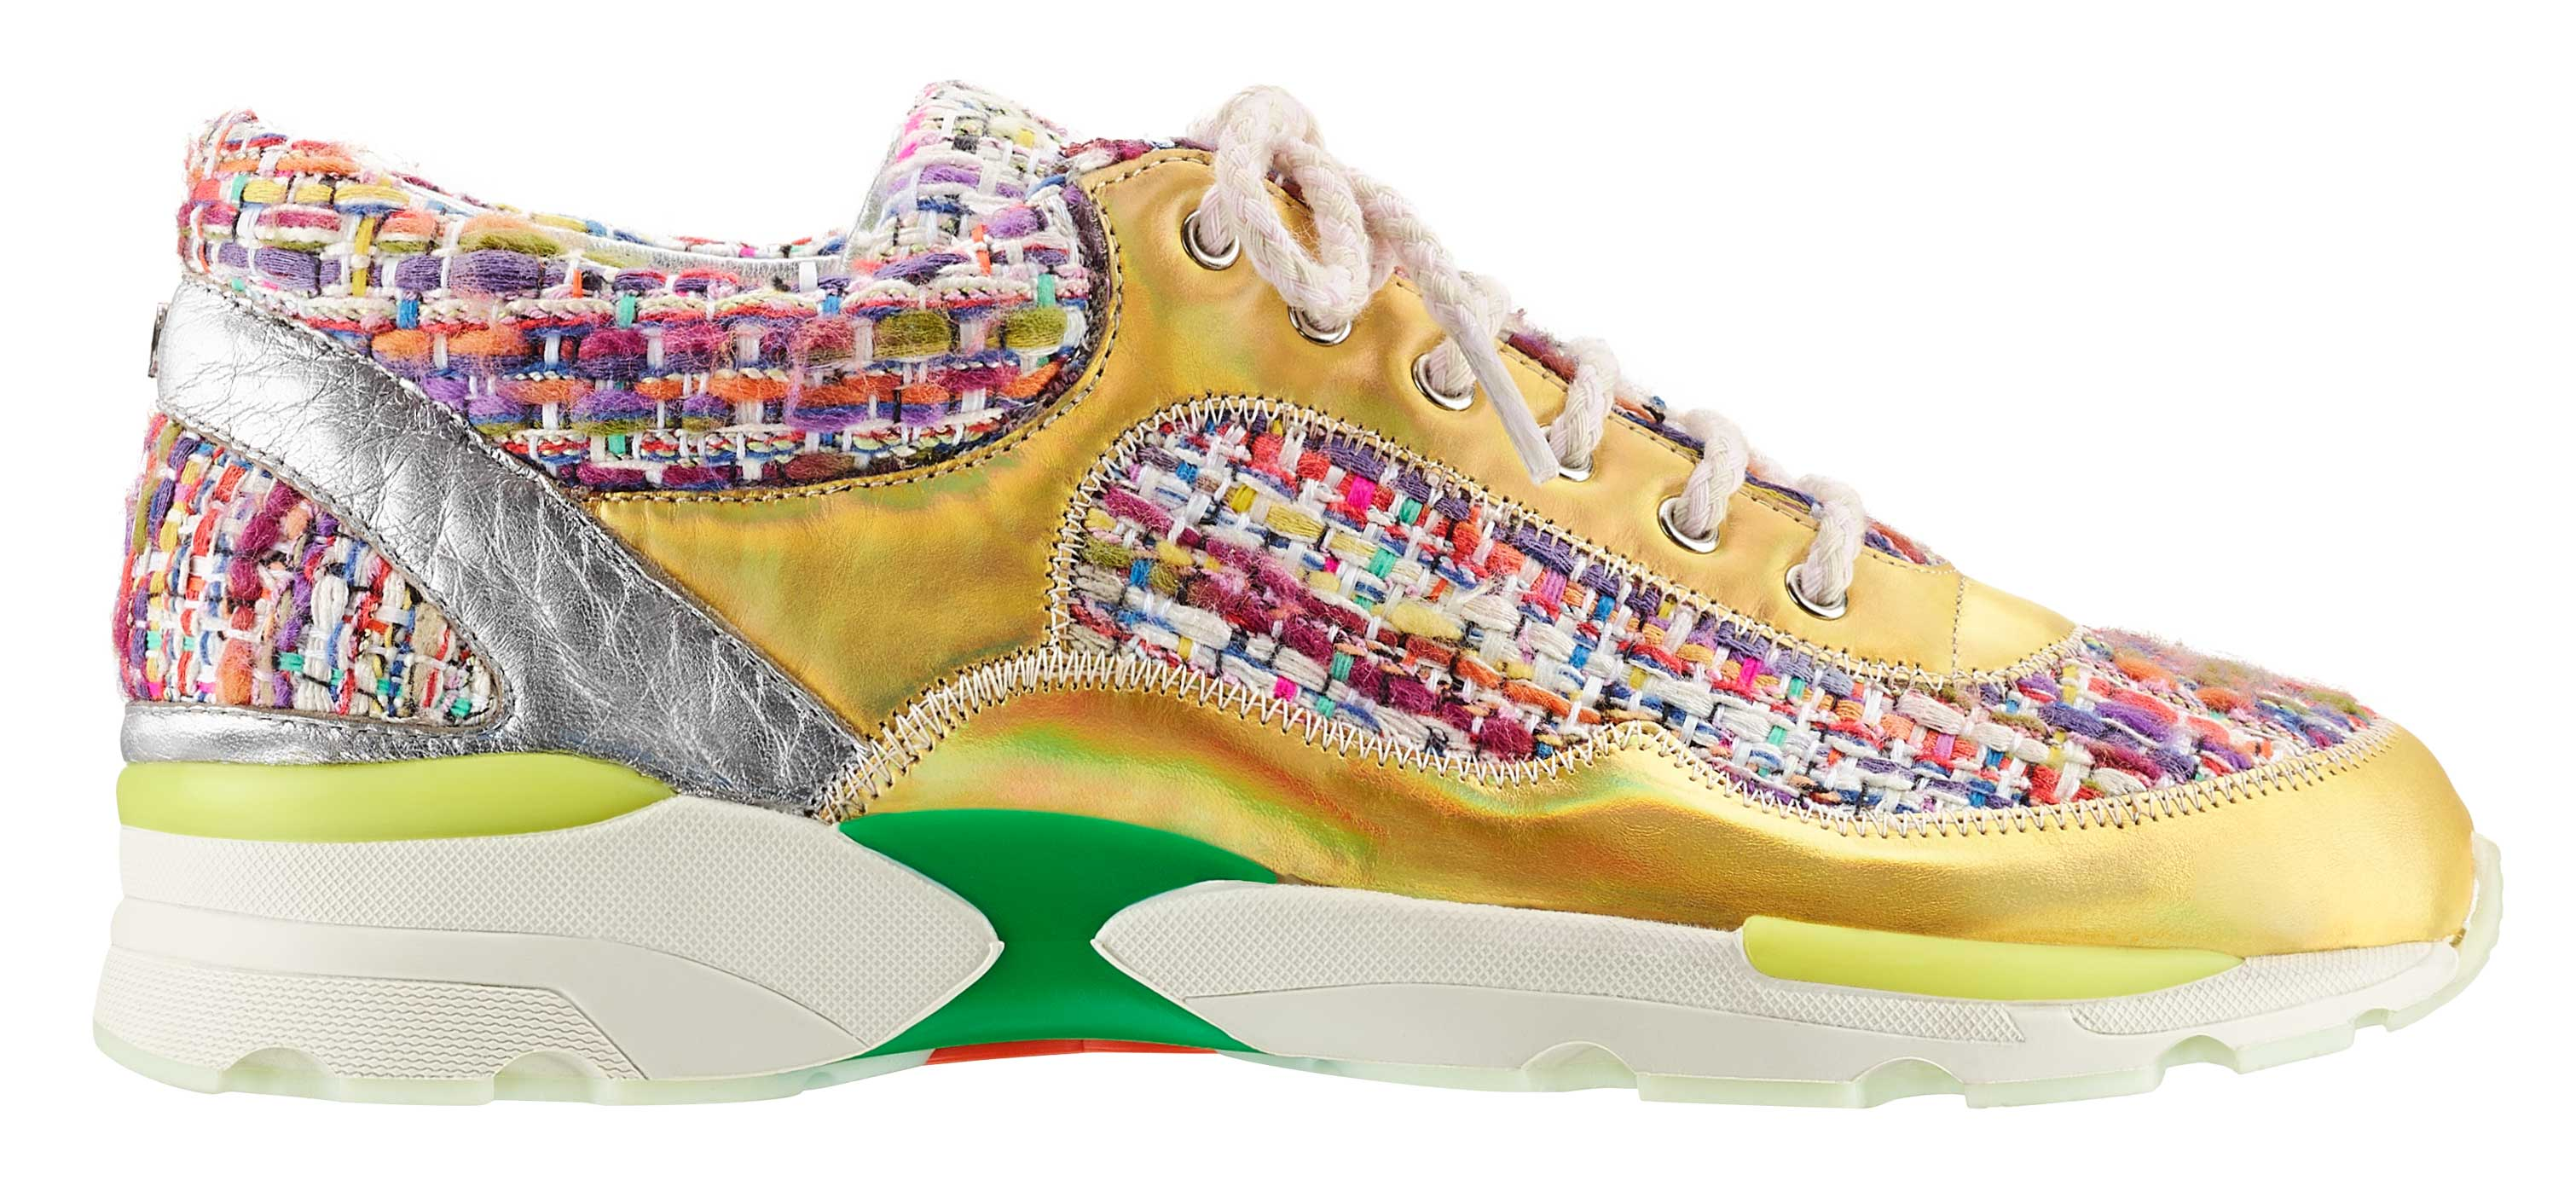 Multicoloured-tweed,-leather-and-rubber-sneaker_Basket-en-tweed-multicolore,-cuir-et-caoutchouc